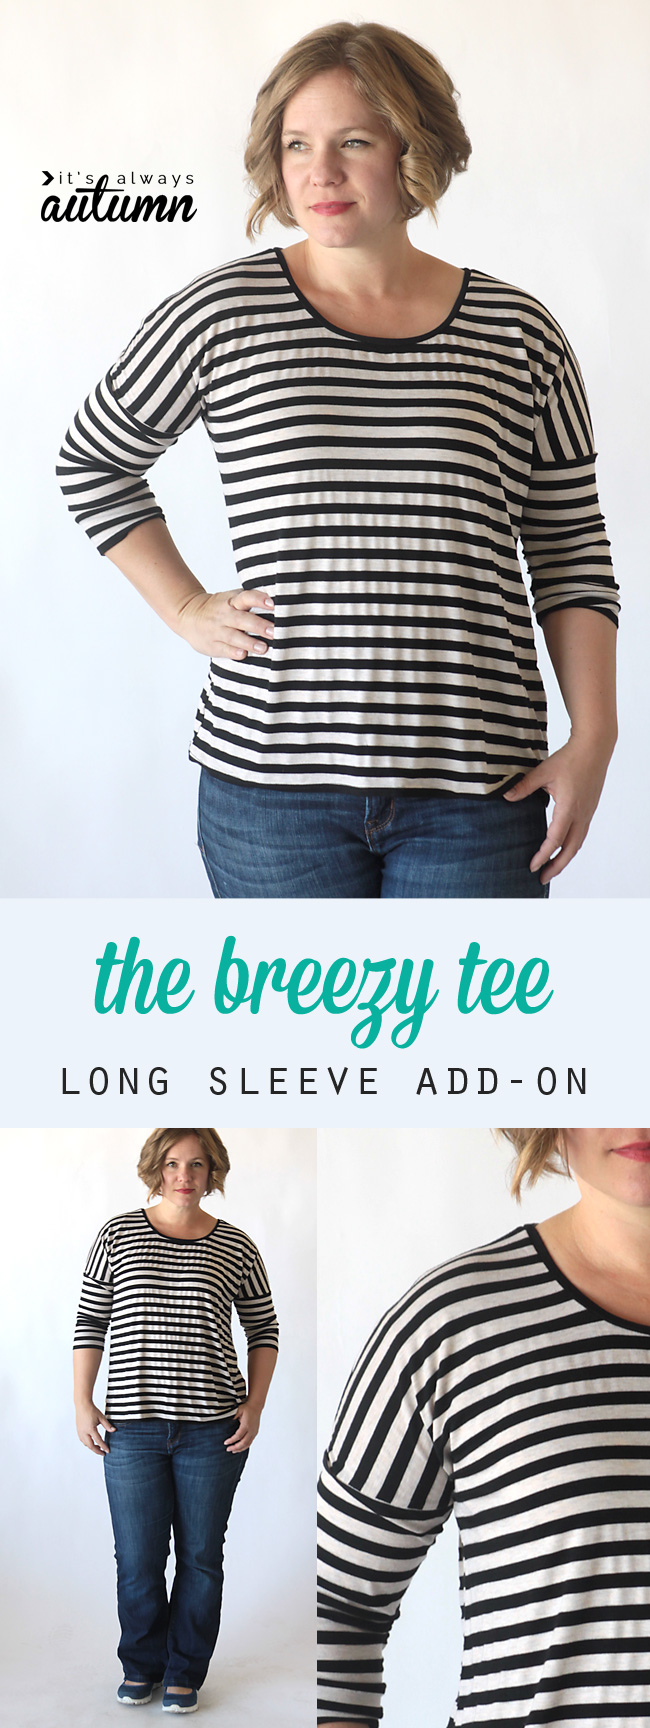 A woman wearing the breezy tee with long sleeves